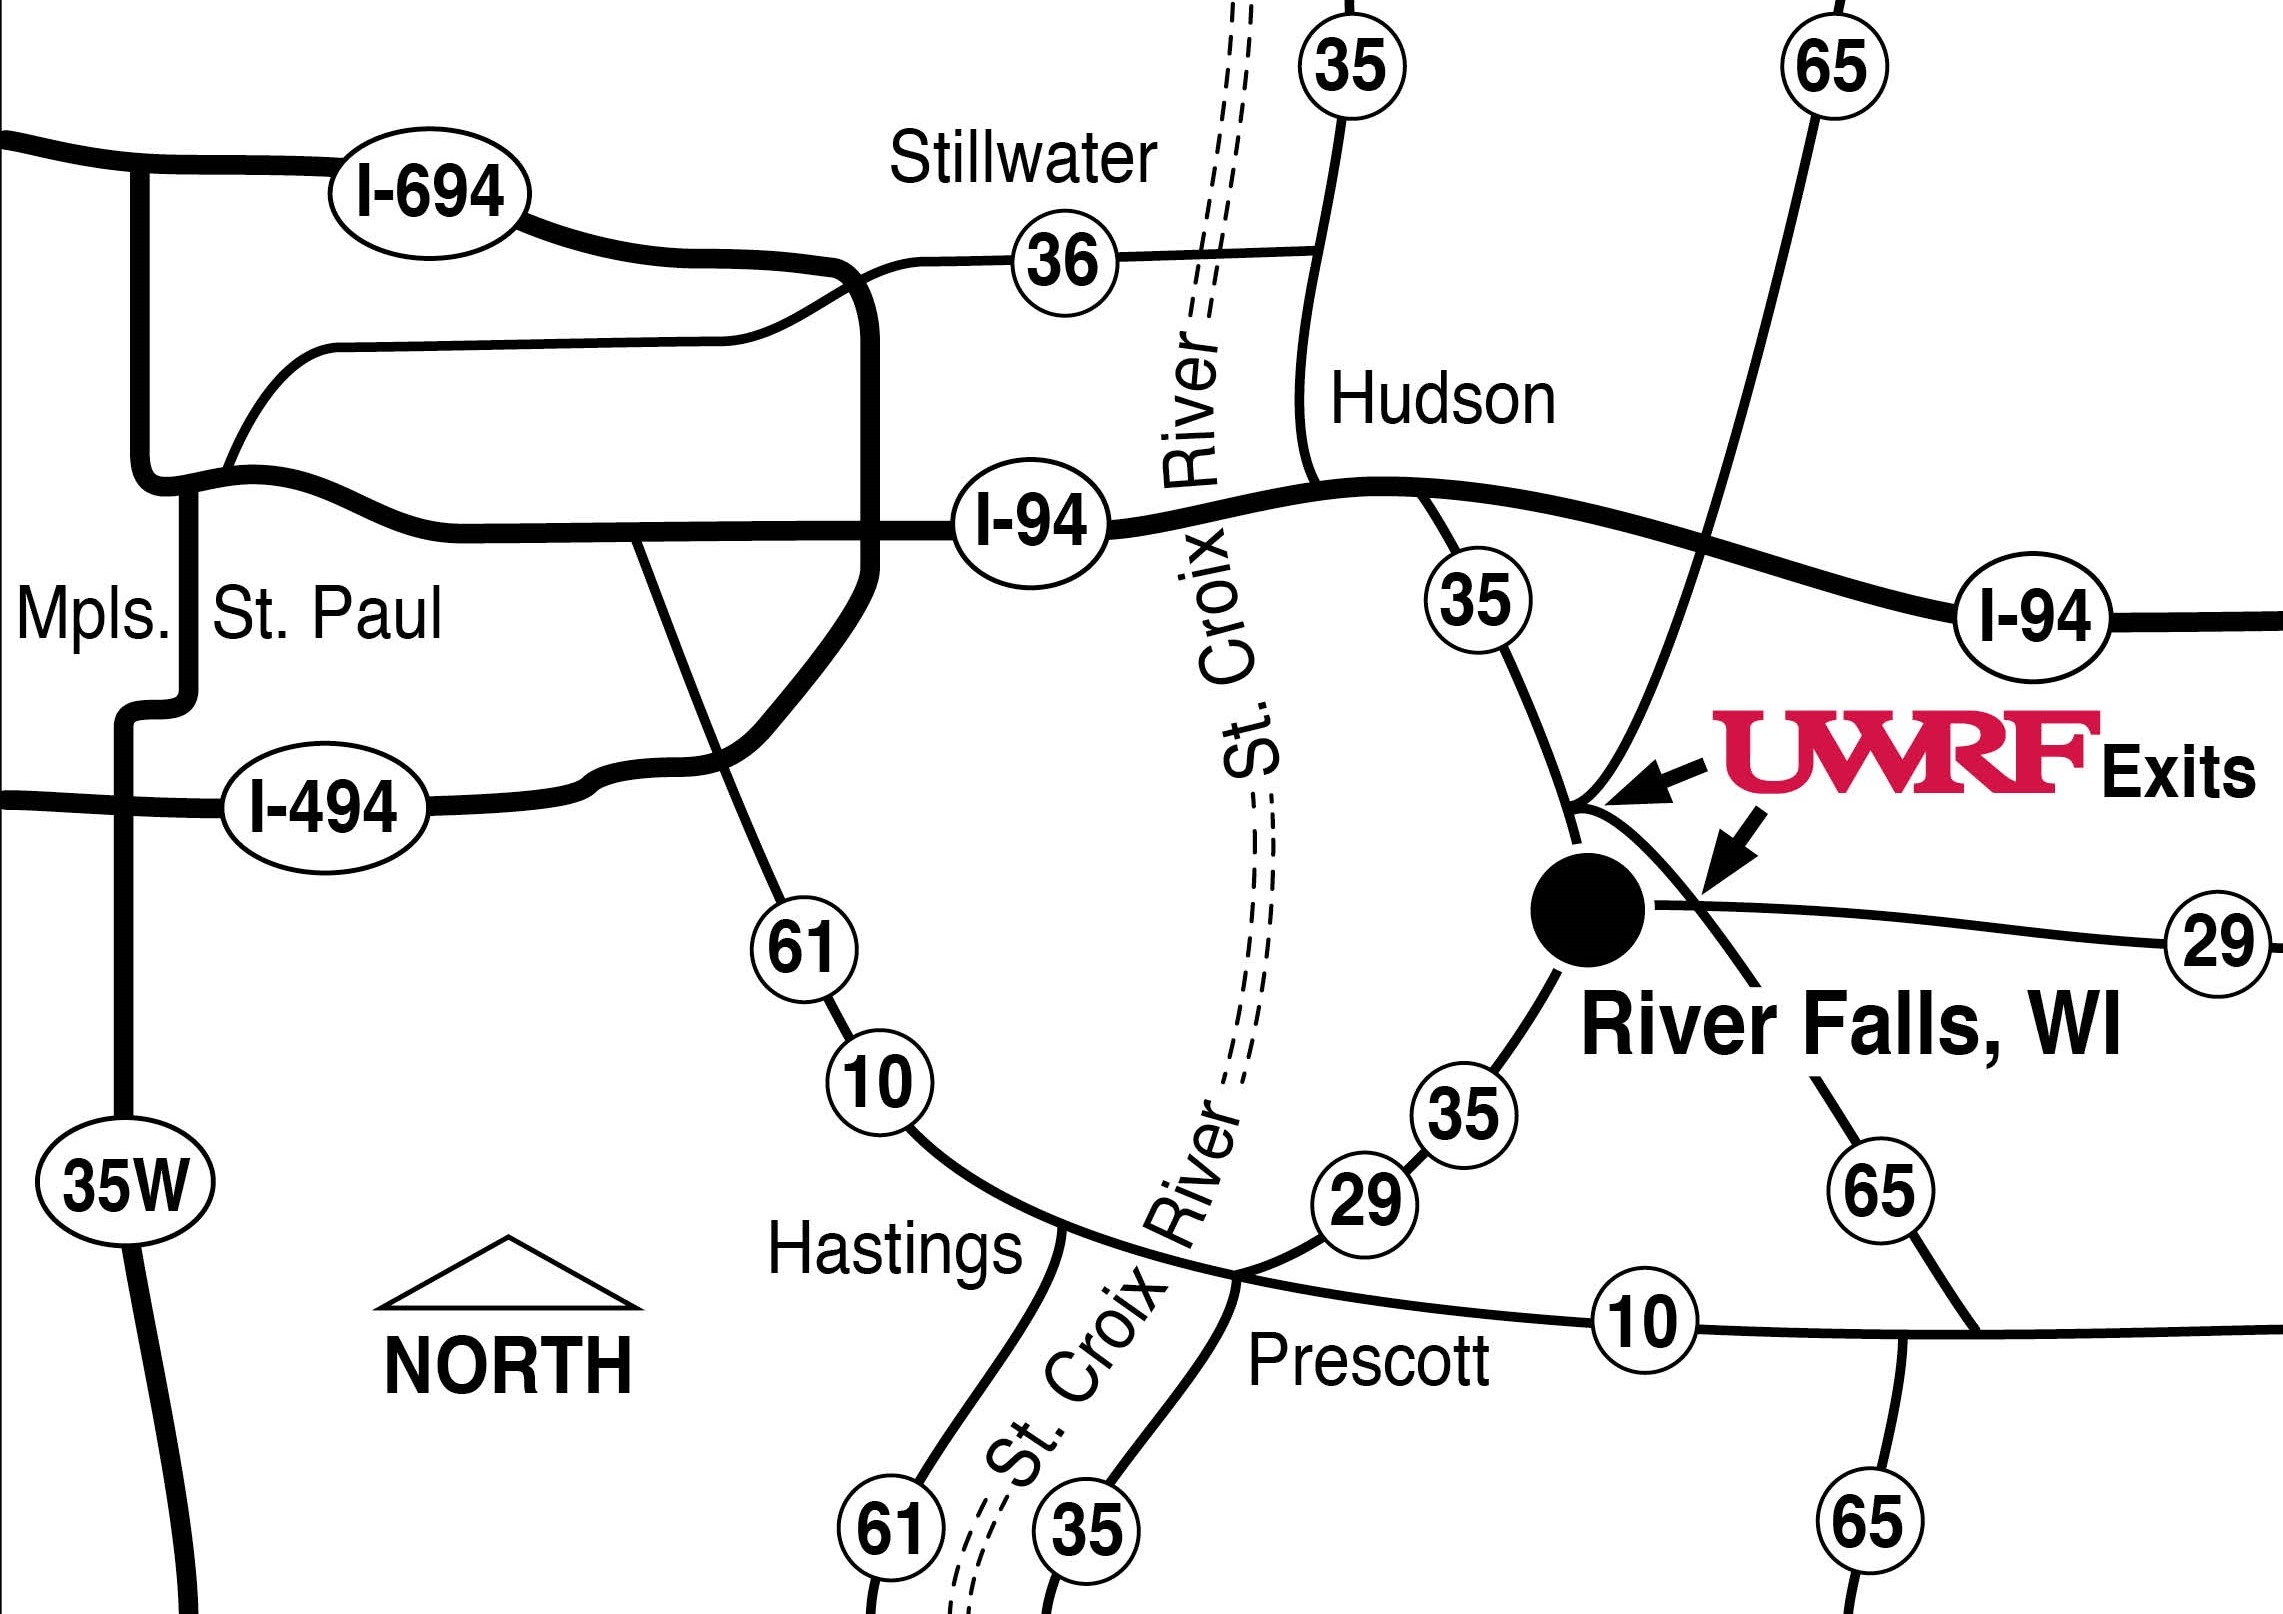 Map showing the distance from the Twin Cities to River Falls